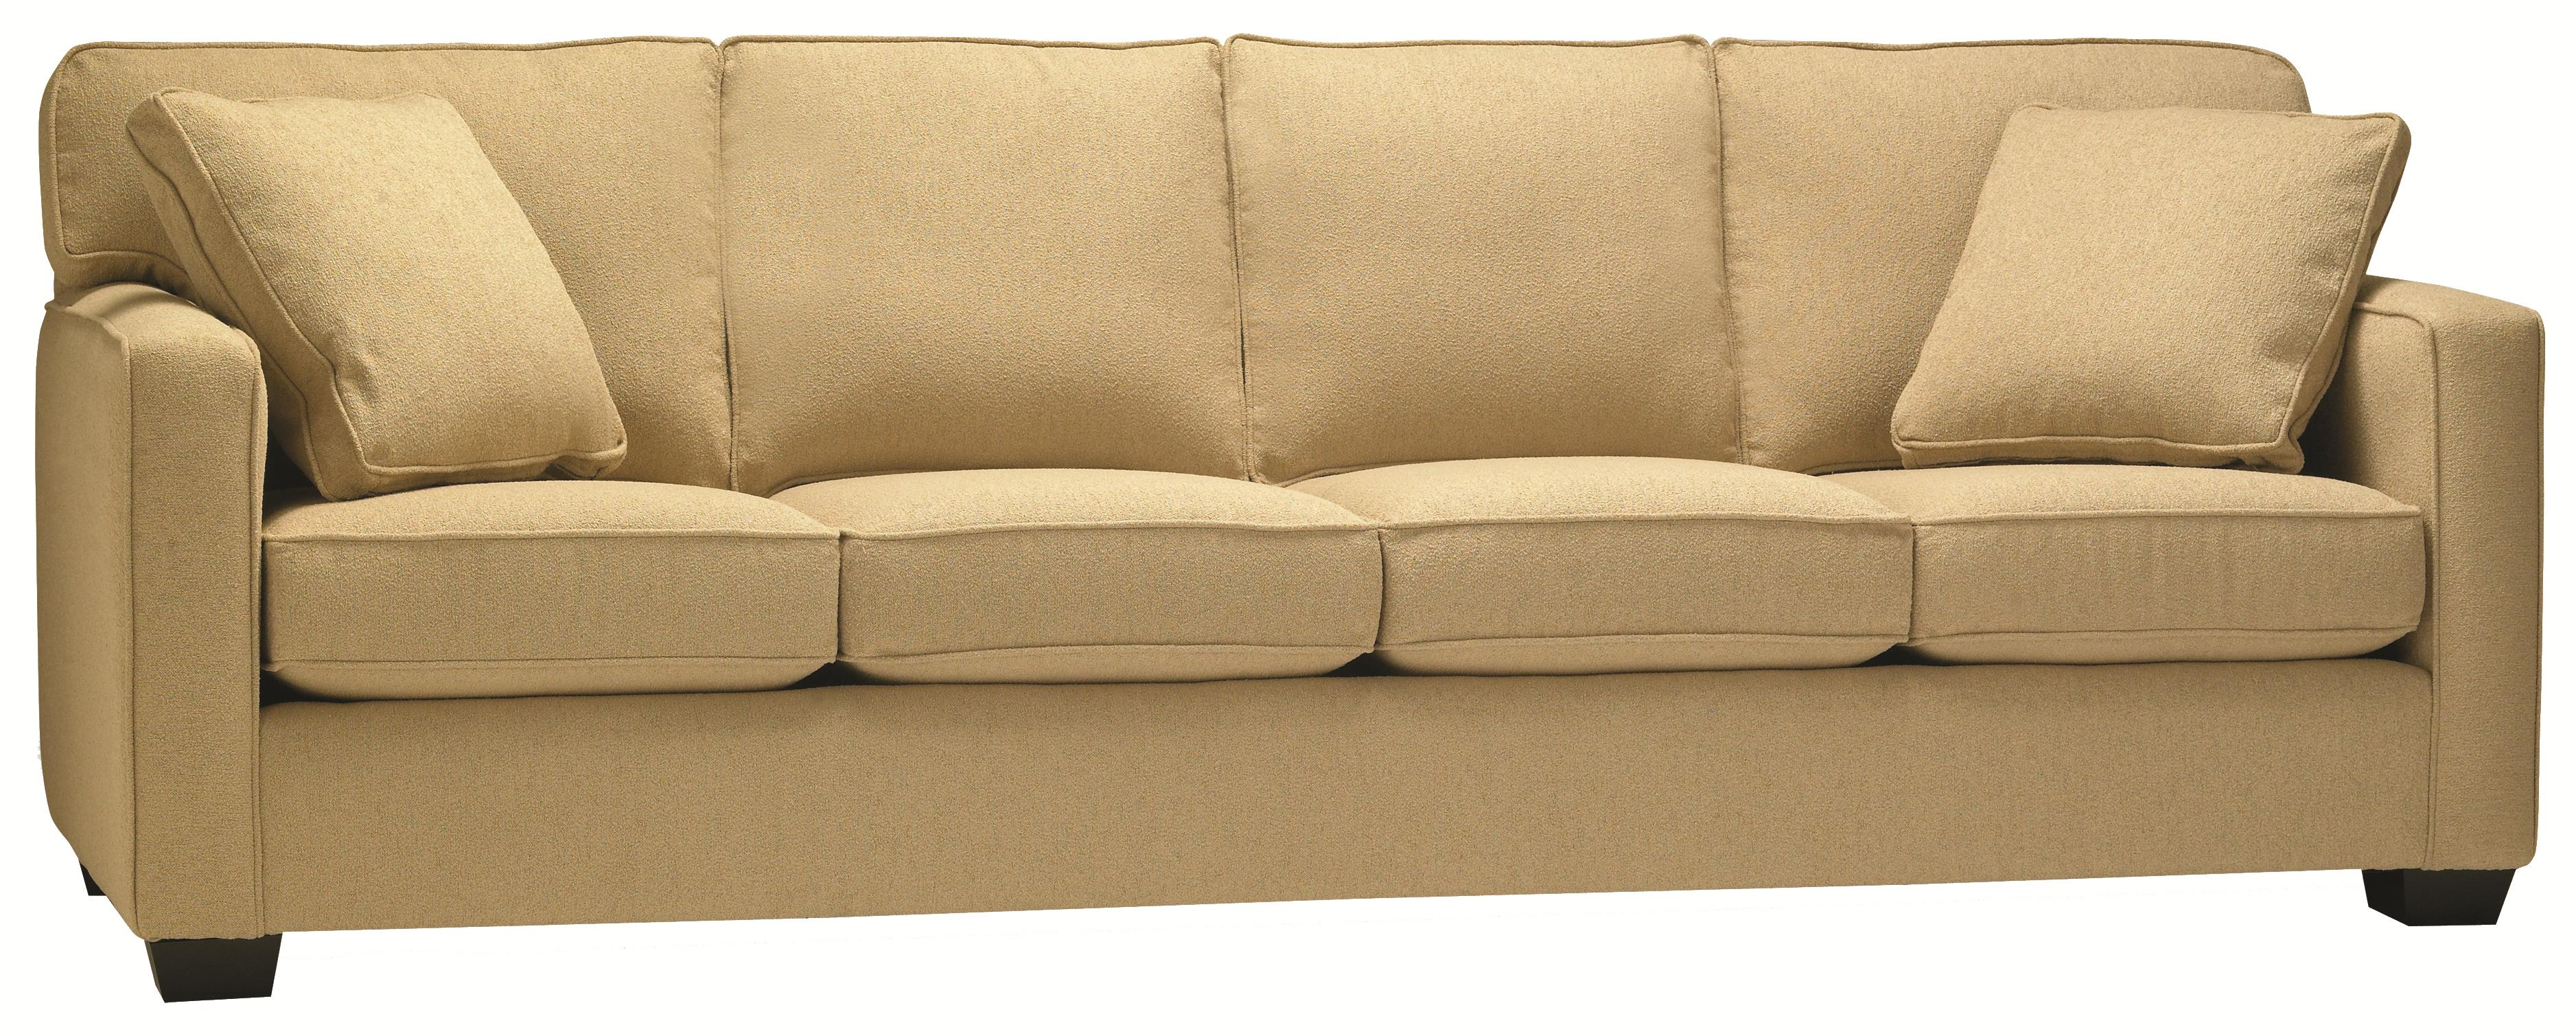 5901 Four Seat Sofa by Lewis Home at Stoney Creek Furniture